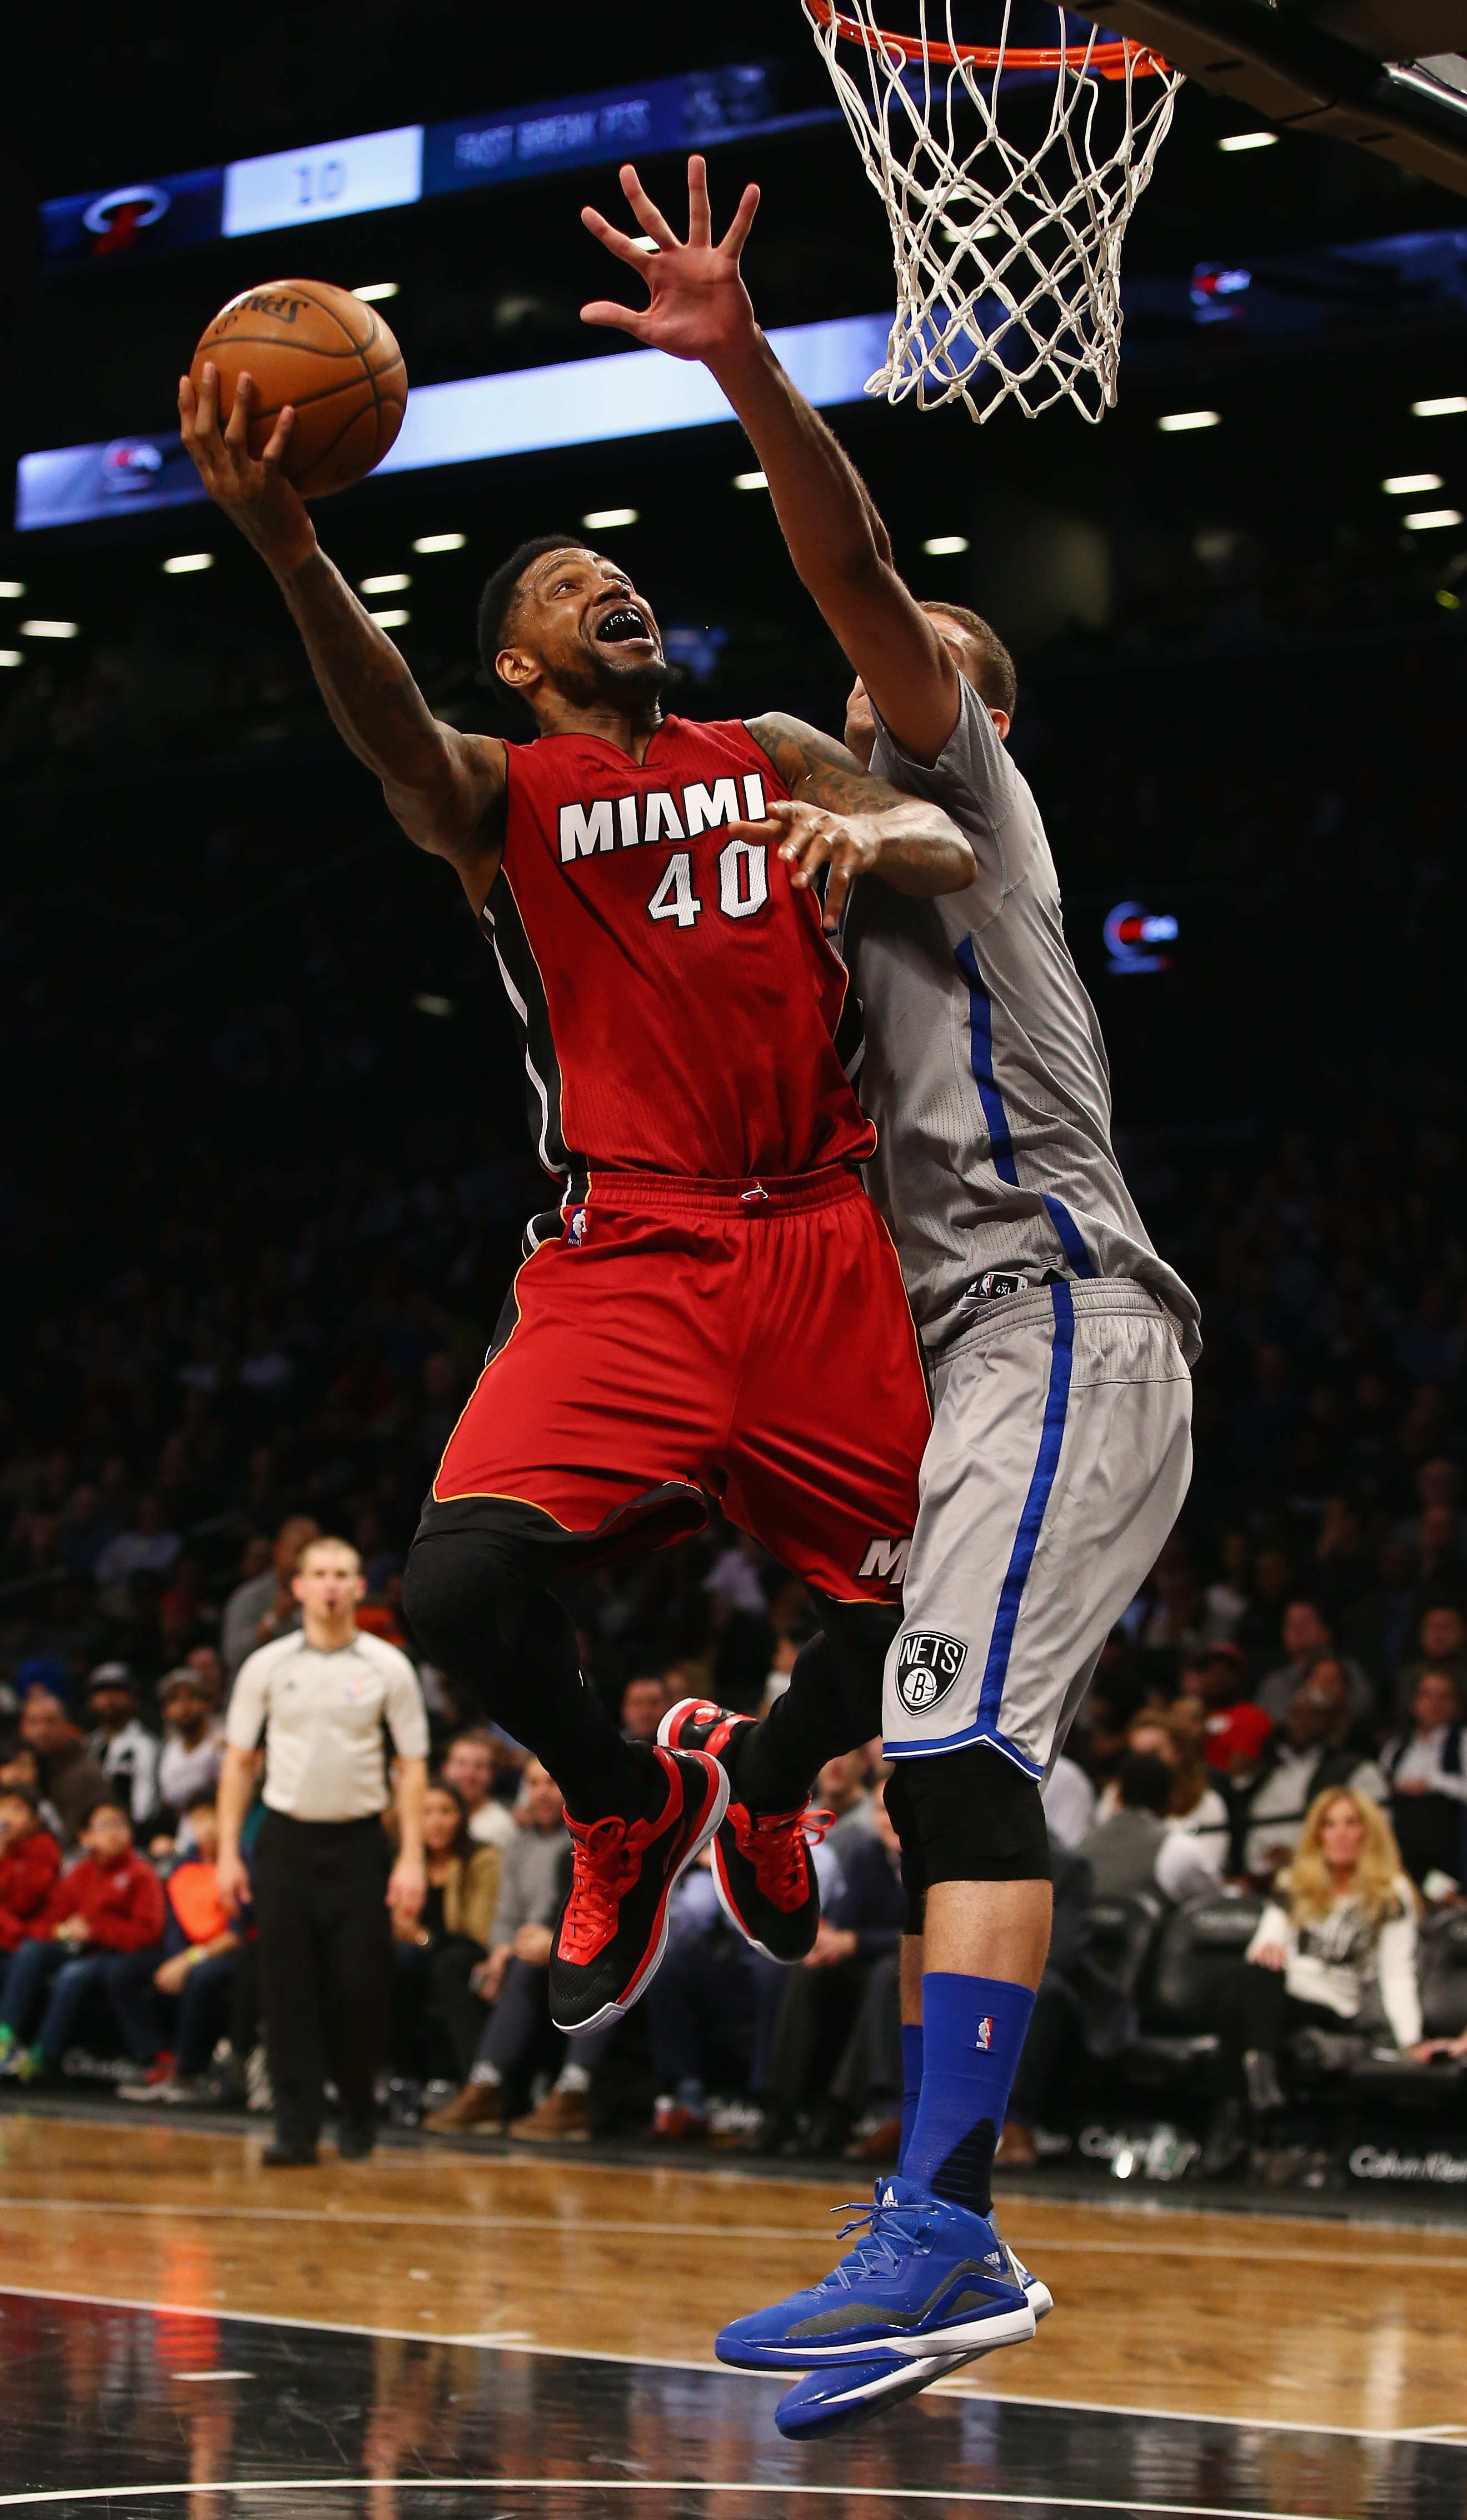 NEW YORK, NY - JANUARY 26:  Udonis Haslem #40 of the Miami Heat shoots agaist Brook Lopez #11 of the Brooklyn Nets during their game at the Barclays Center on January 26, 2016 in New York City.   (Photo by Al Bello/Getty Images)